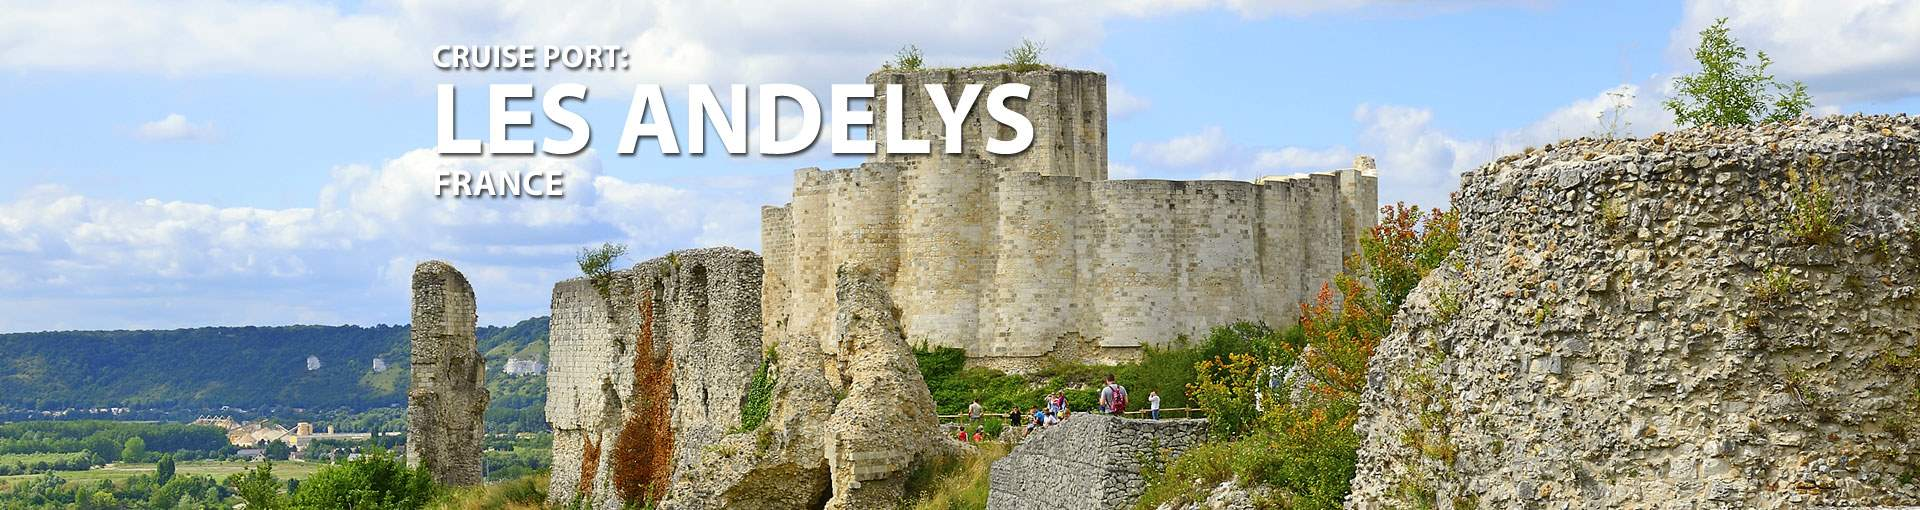 Cruises to Les Andelys, France